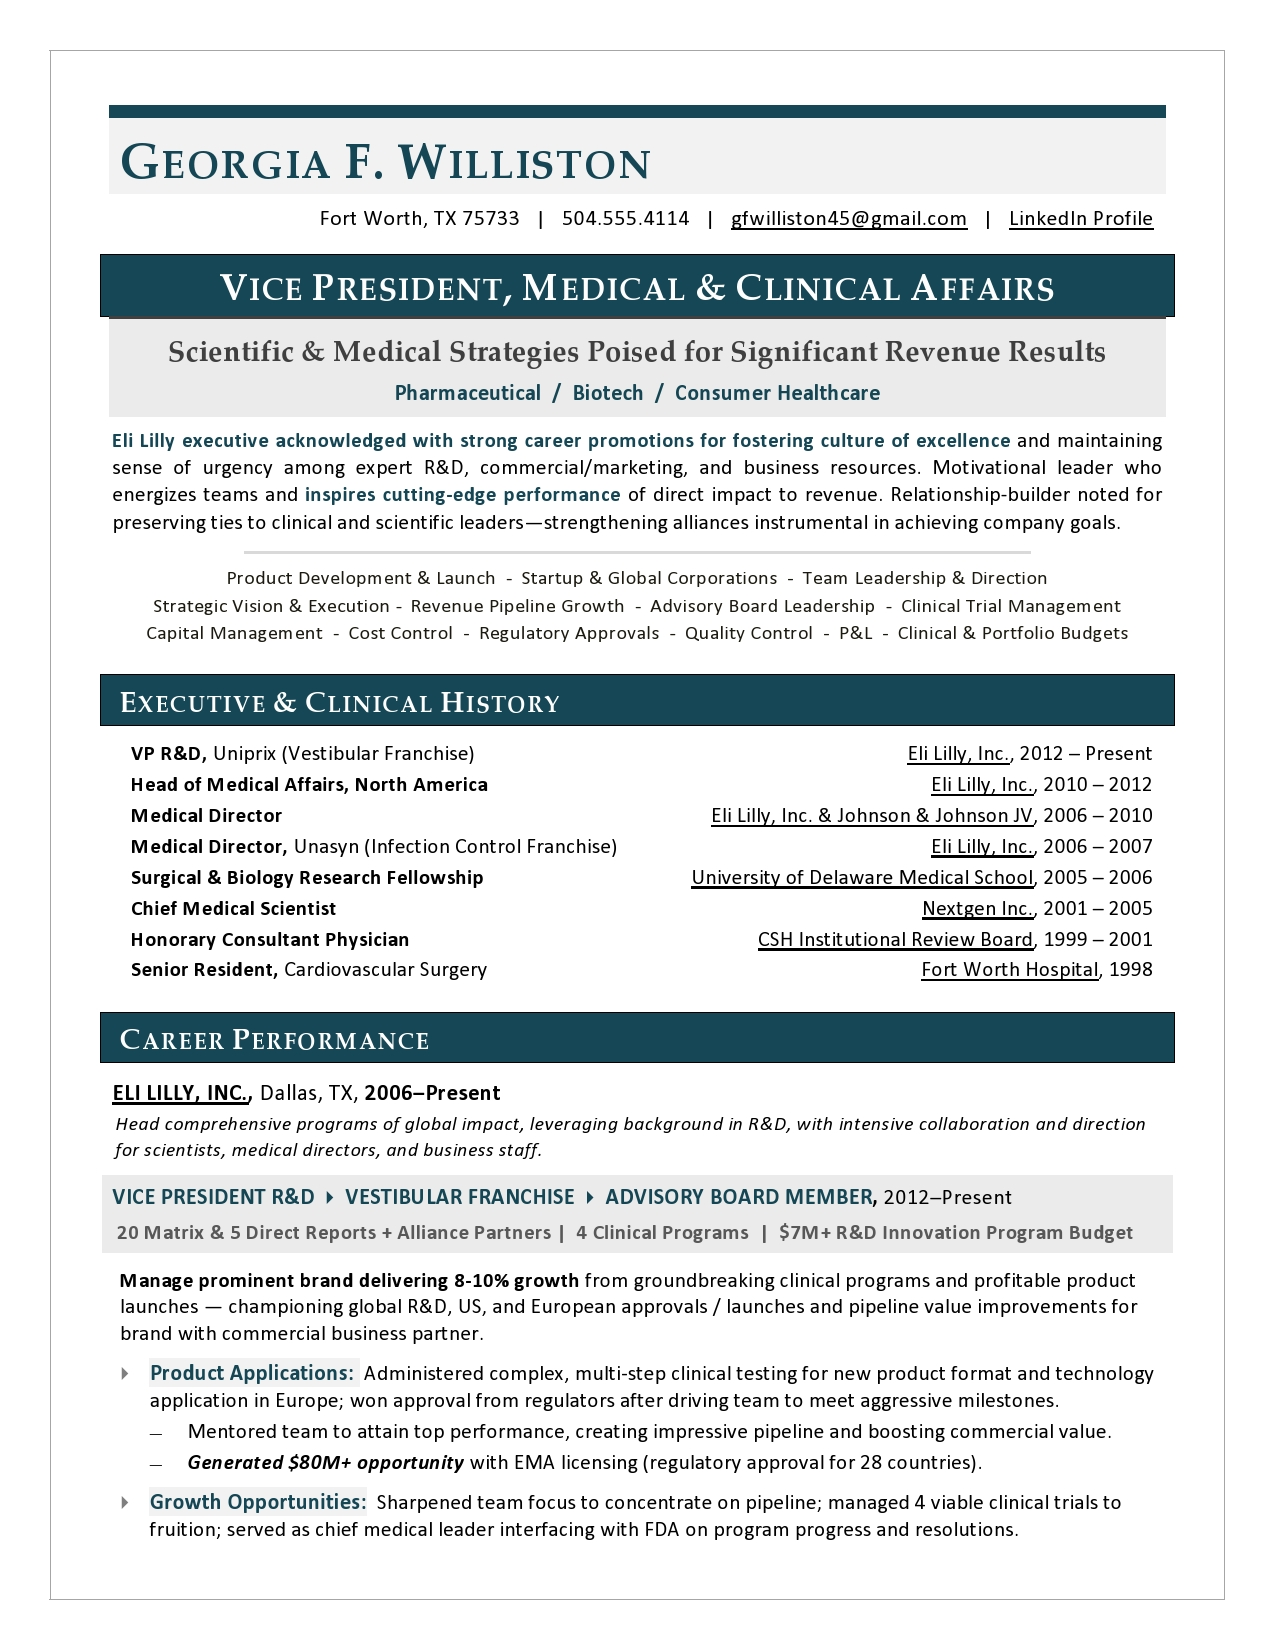 best pharmaceutical resume writing services the of professional medical writers vp Resume Professional Medical Resume Writers